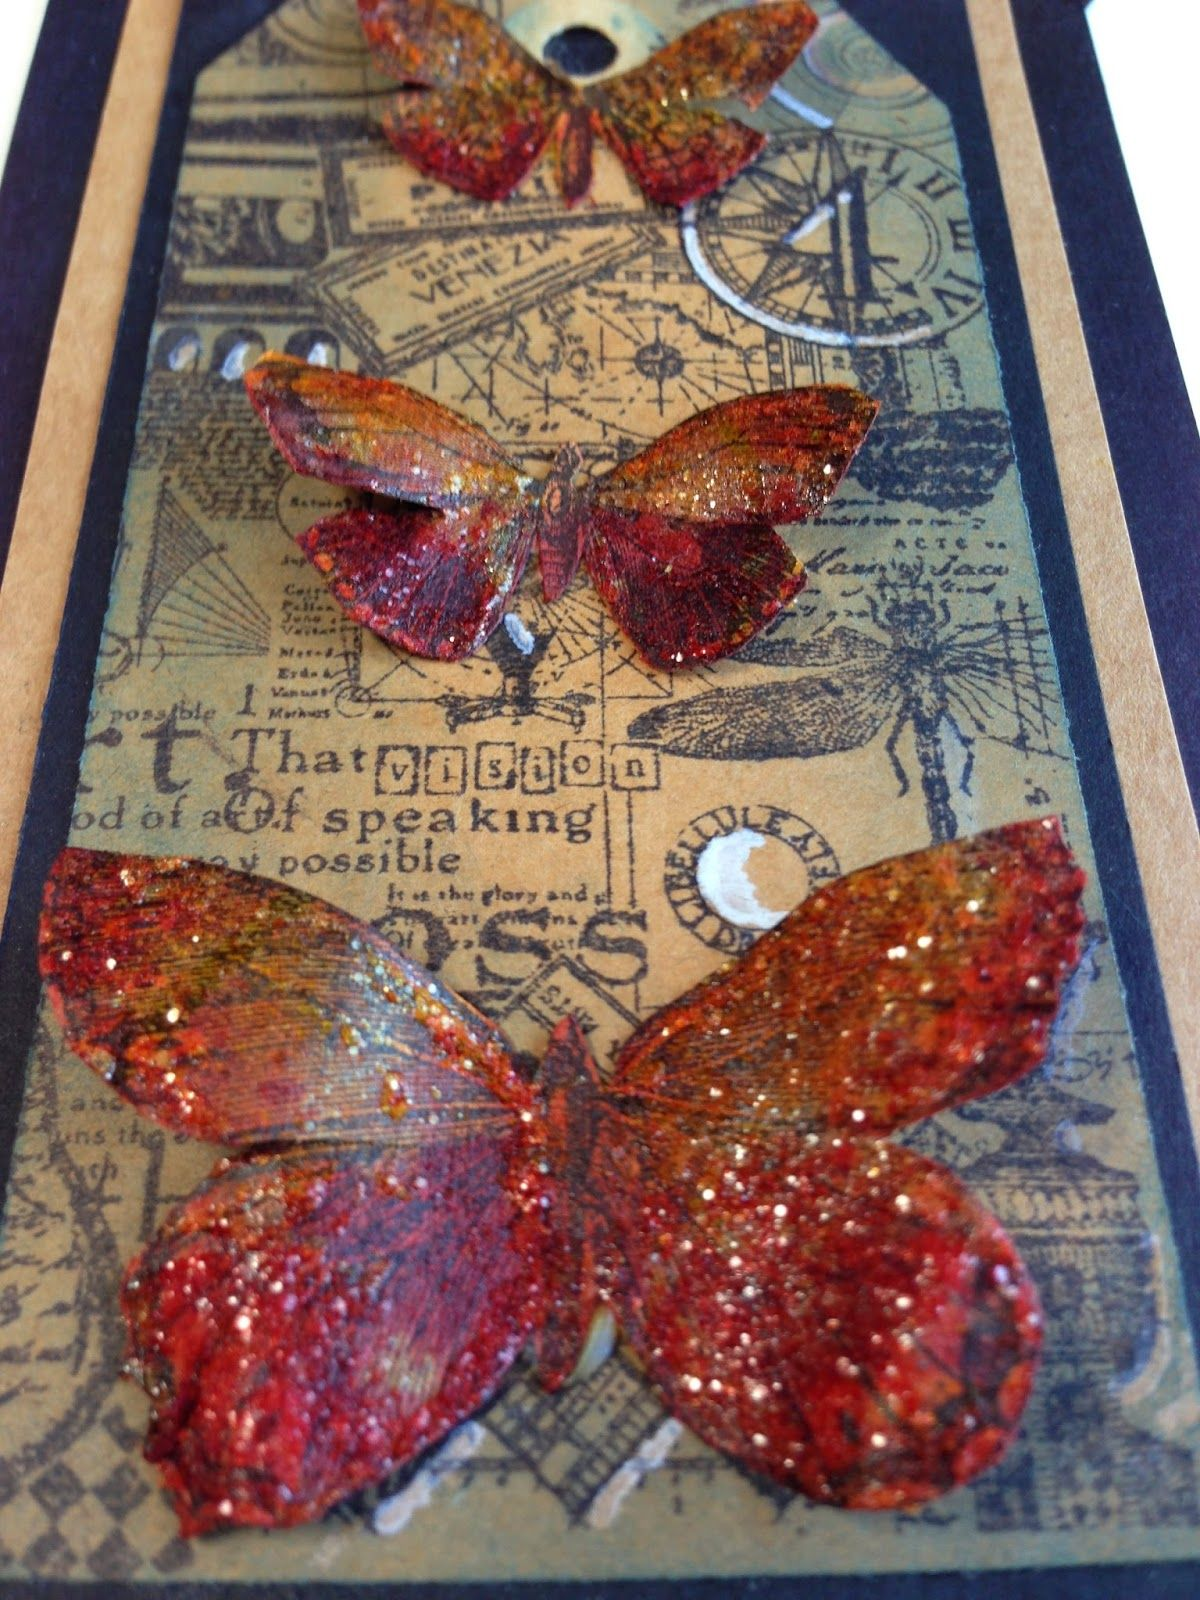 Dee Adams: Tim's clasic's butterflies  Butterflies colored with red brick and spiced marmalade distress stains then coated with rock candy stickles on the wings.